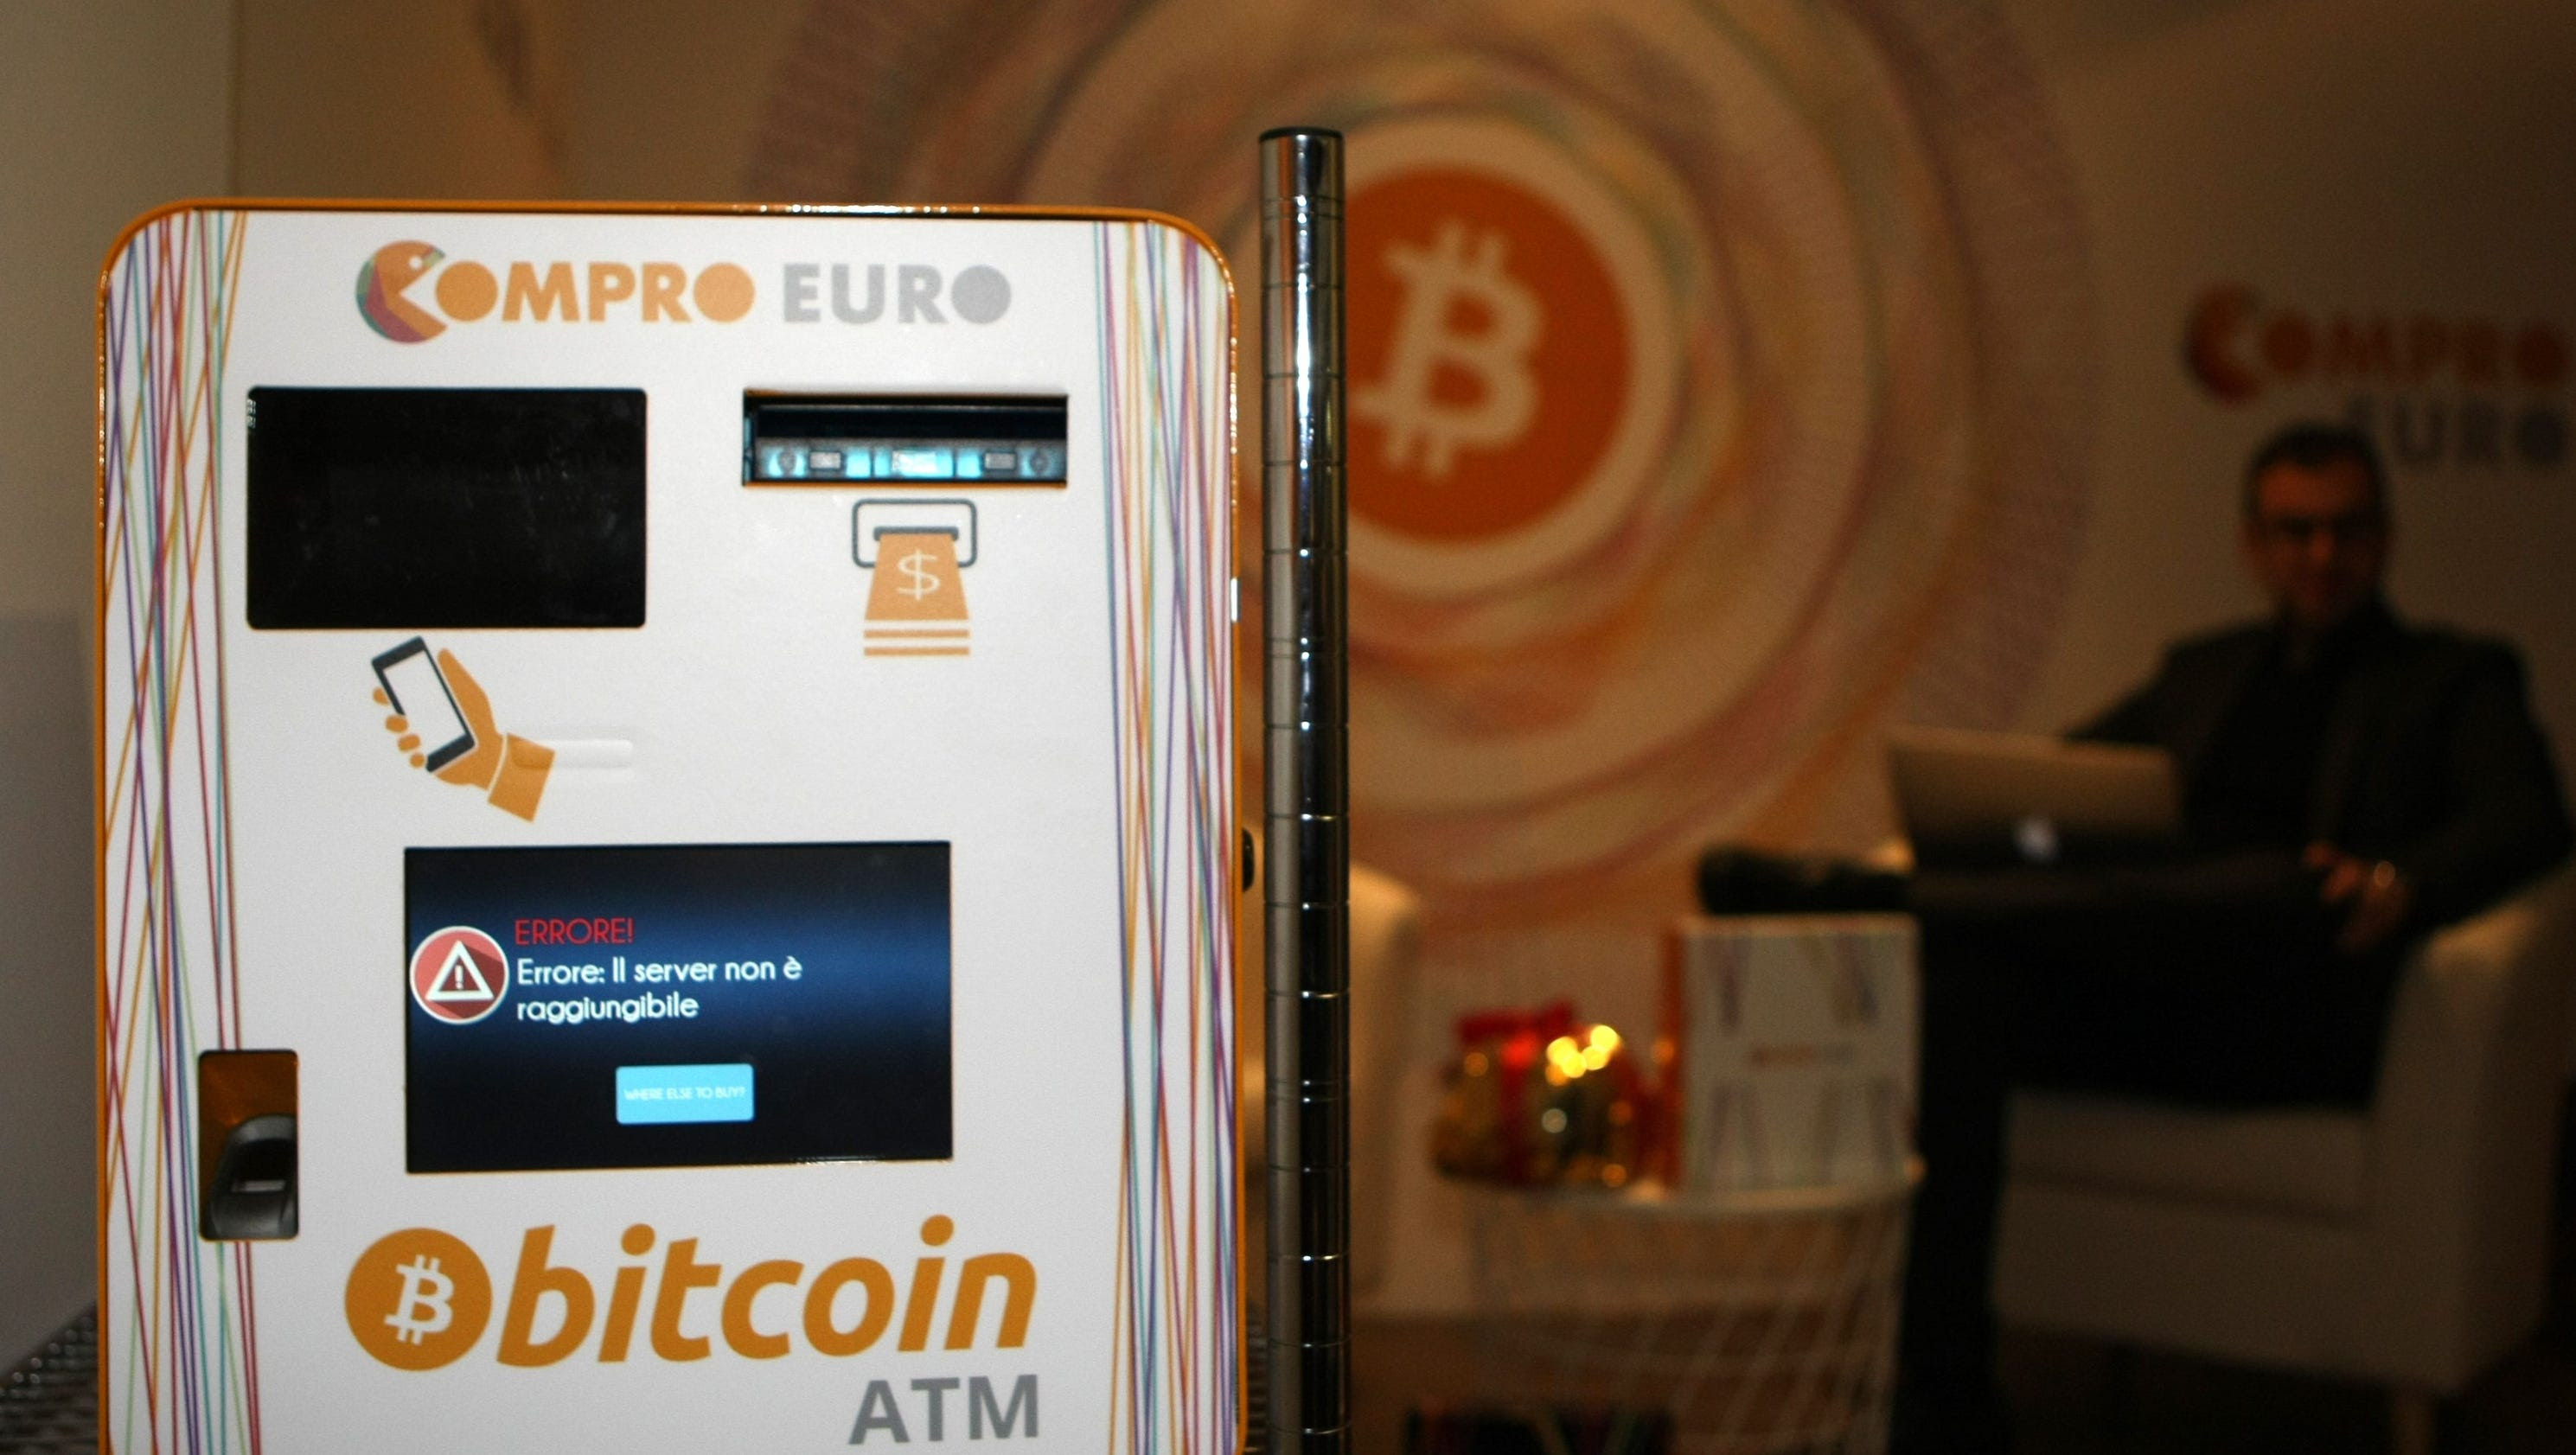 where to buy bitcoins with a debit card